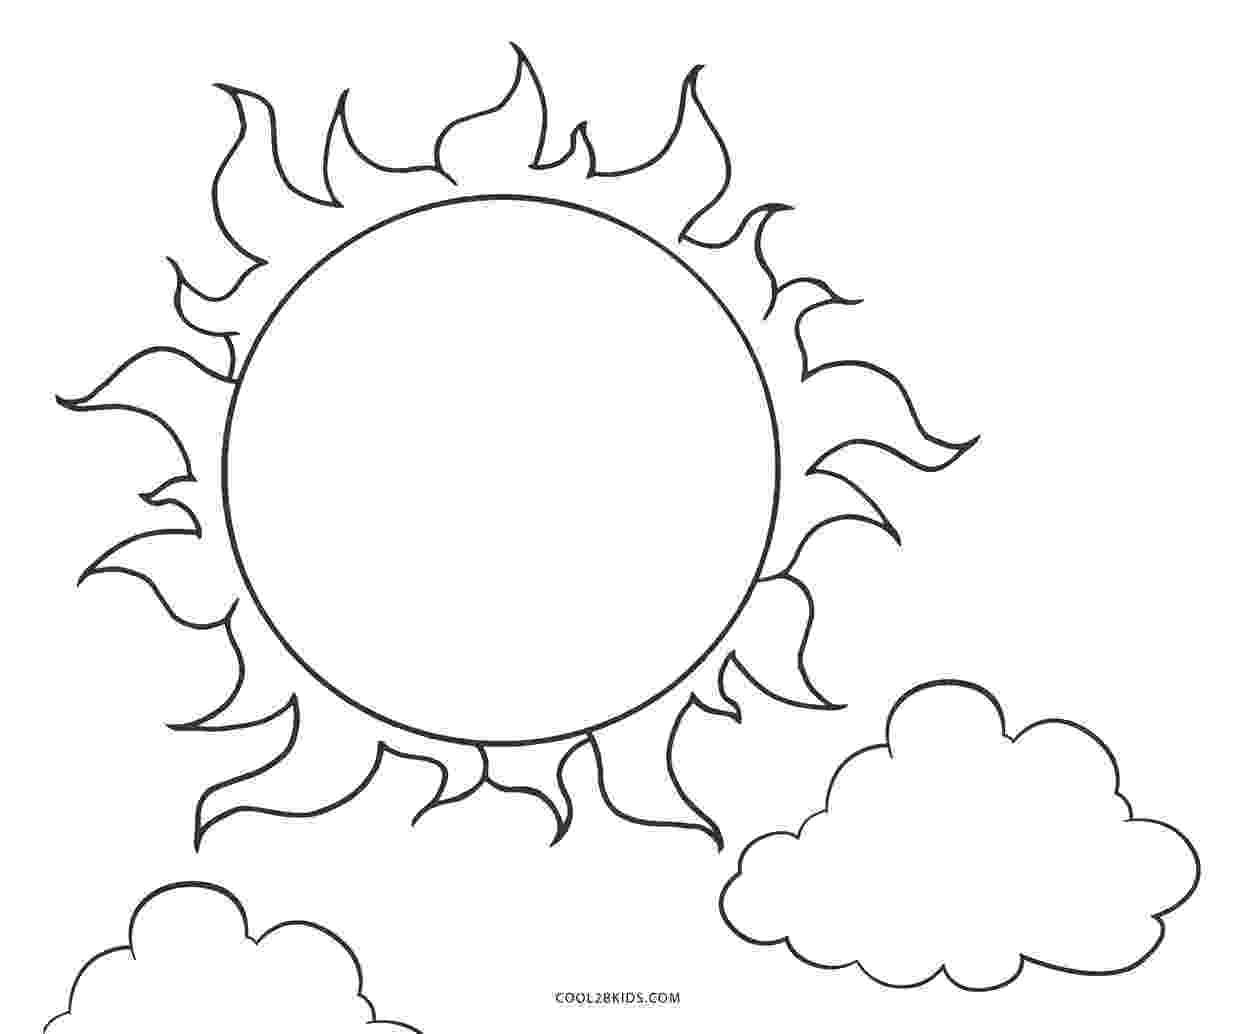 sun coloring pages free printable sun coloring pages for kids cool2bkids coloring pages sun